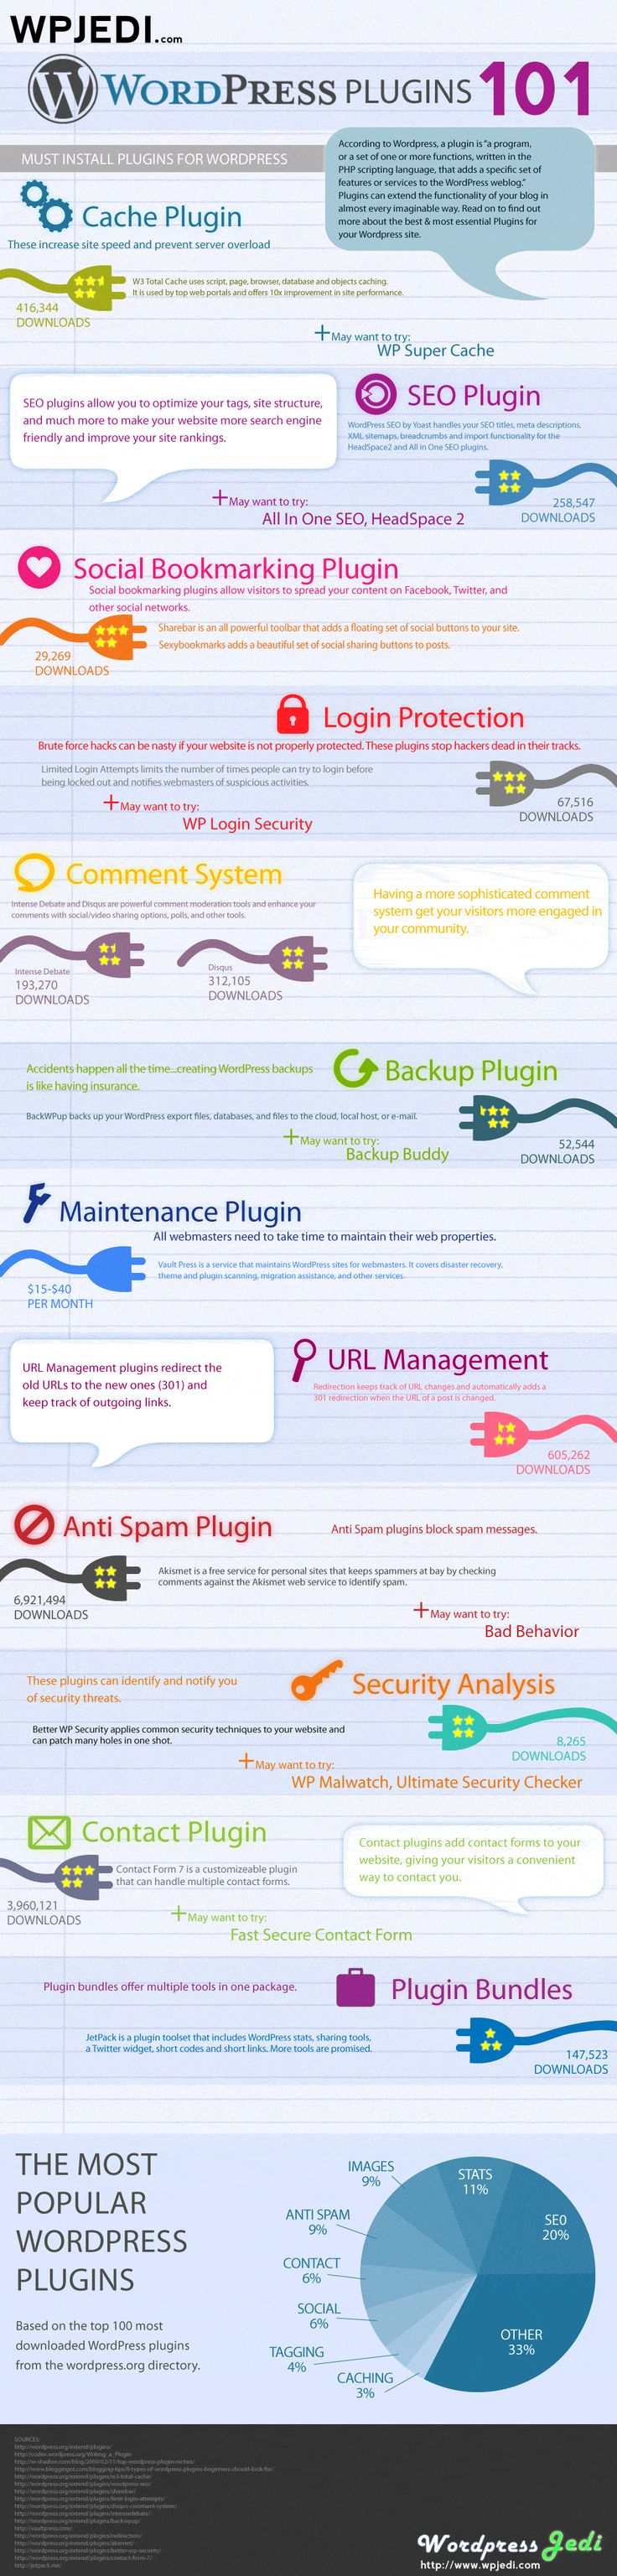 Must have #WordPress #plugins! Enjoy! Cheers, Jakolien